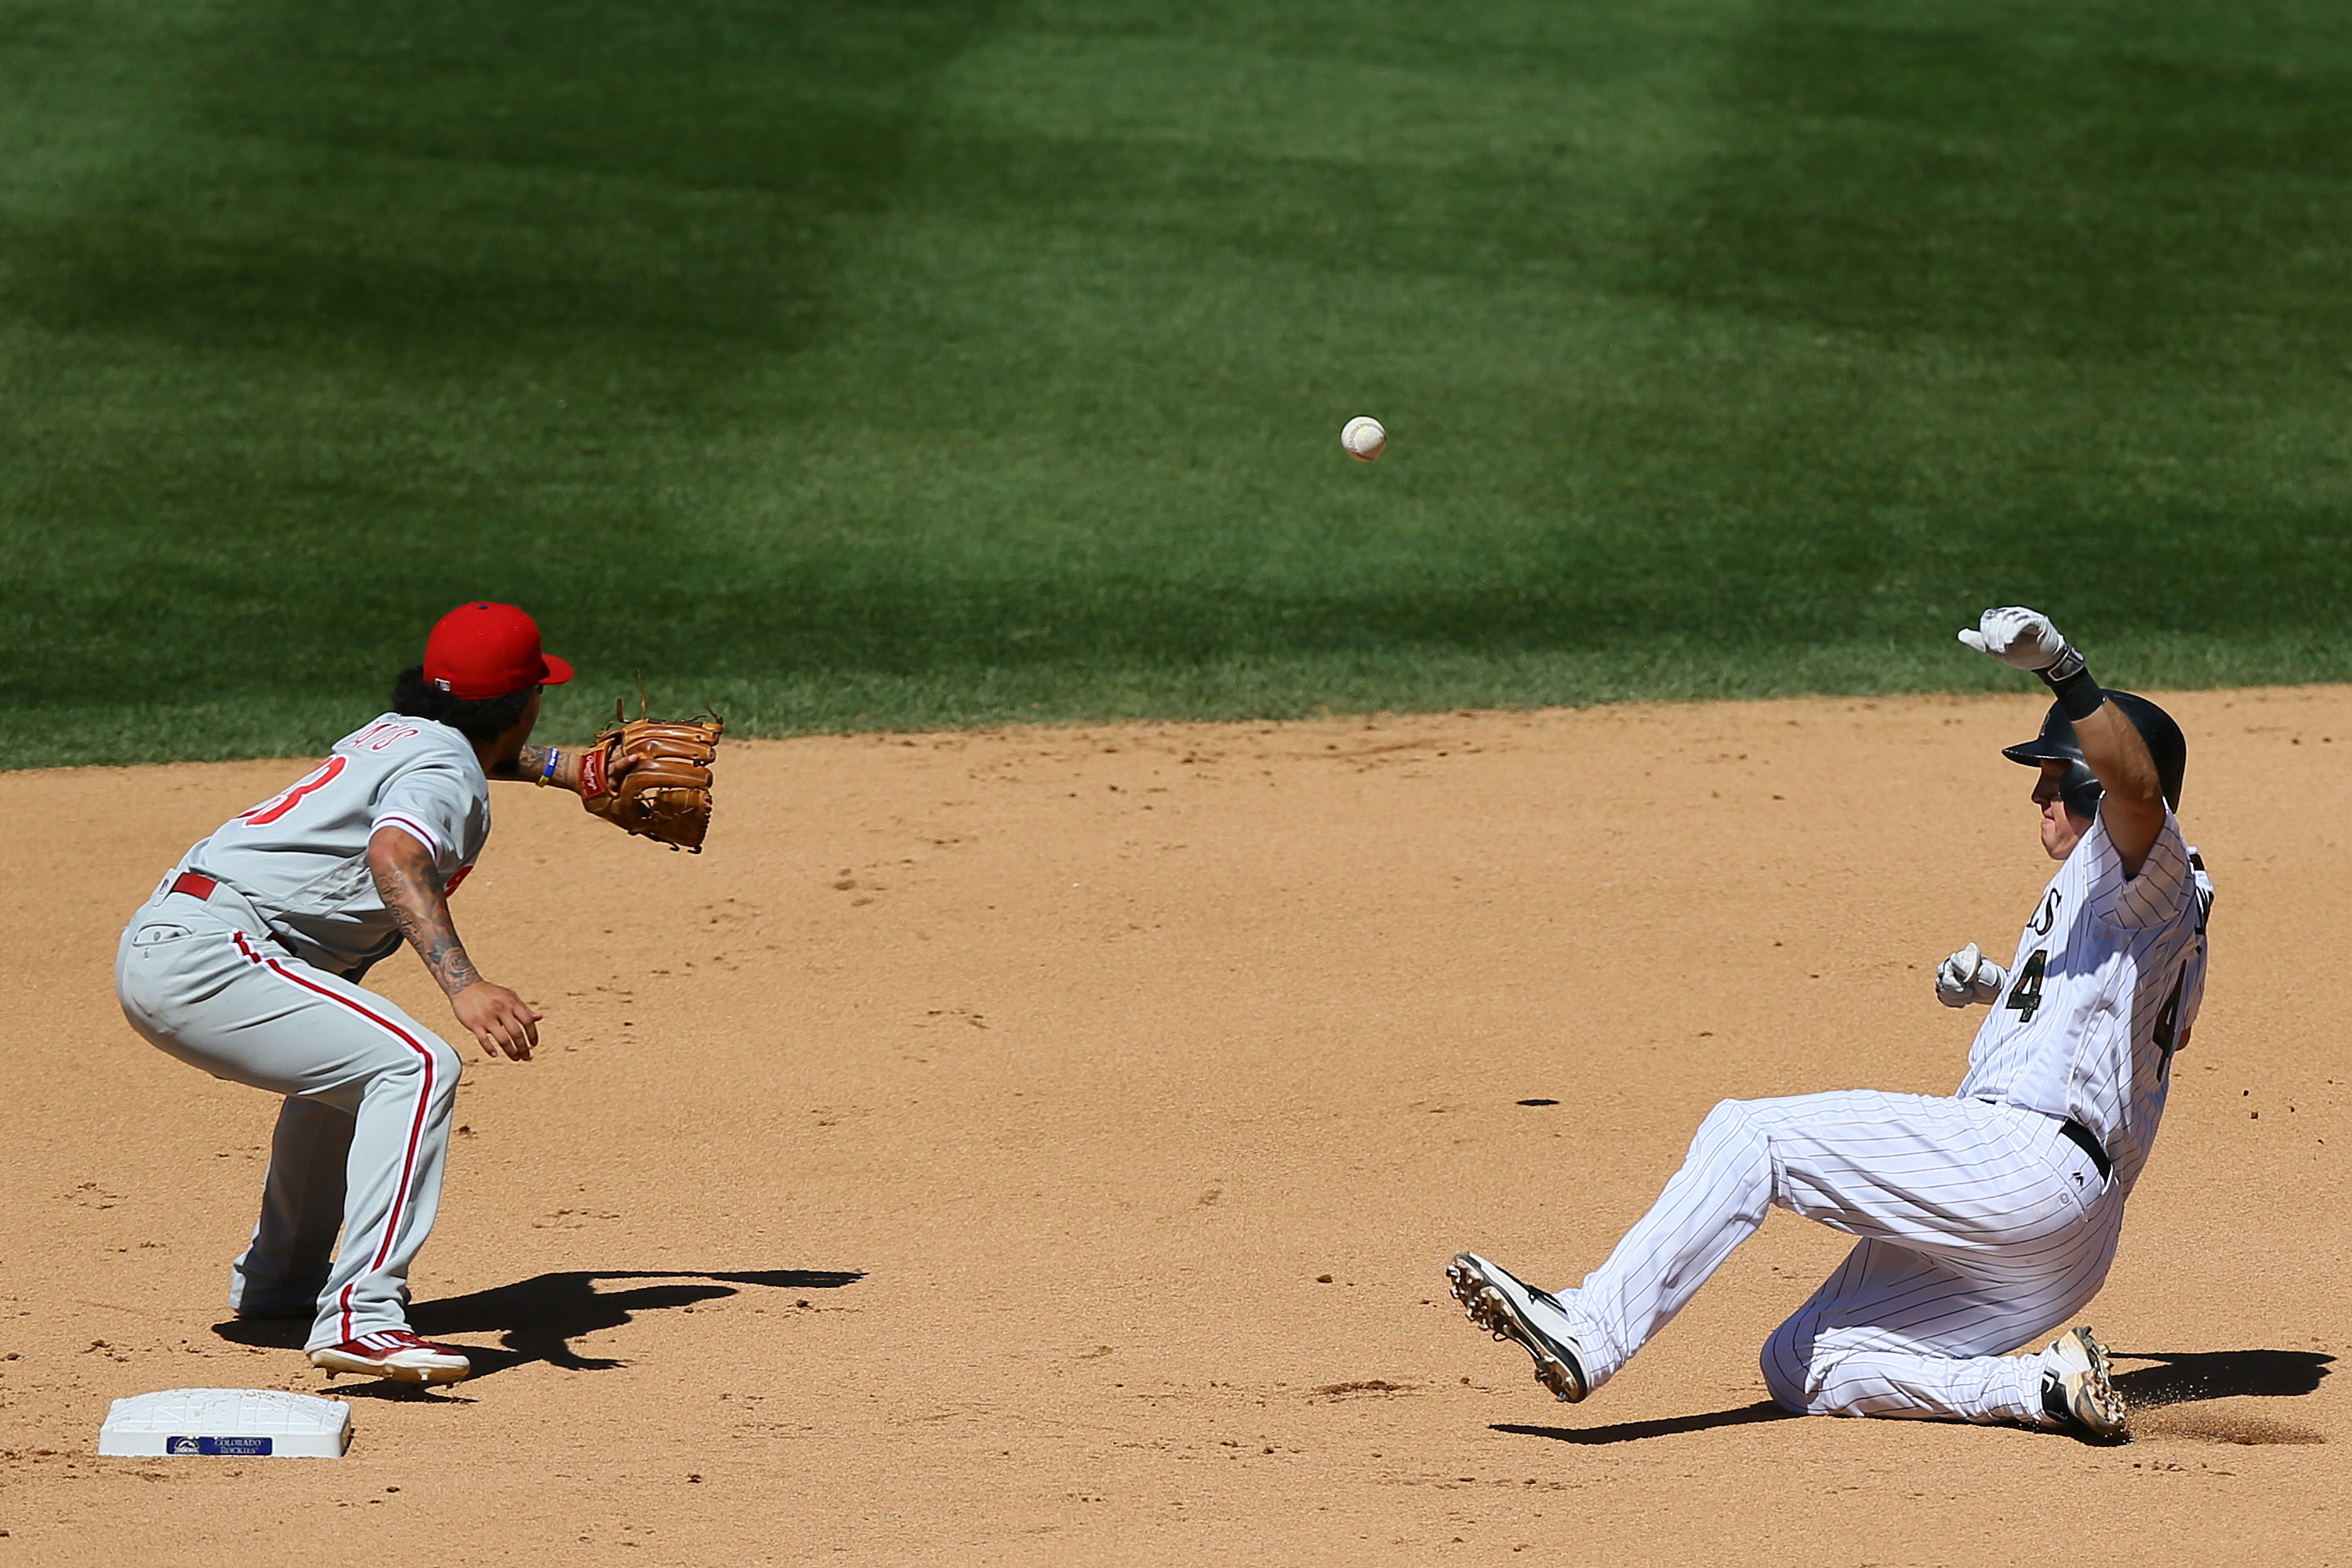 Nick Hundley #4 of the Colorado Rockies slides in safely for a double ahead of the baseball as Freddy Galvis #13 of the Philadelphia Phillies awaits the throw during the fourth inning at Coors Field on July 10, 2016 in Denver, Colorado. (Photo by Justin Edmonds/Getty Images)